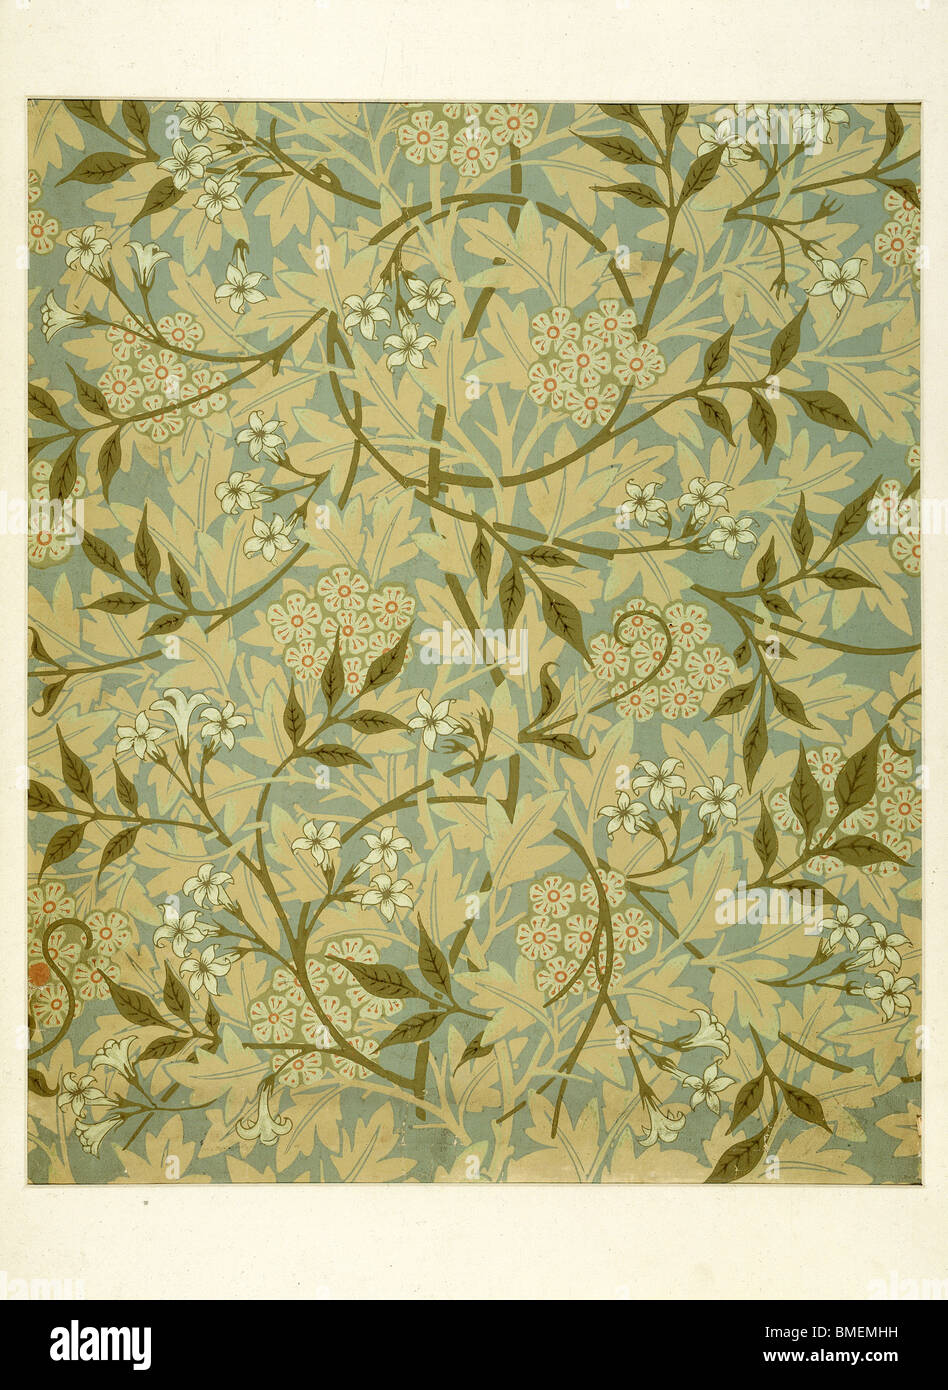 Jasmine wallpaper, by William Morris. England, late 19th century - Stock Image